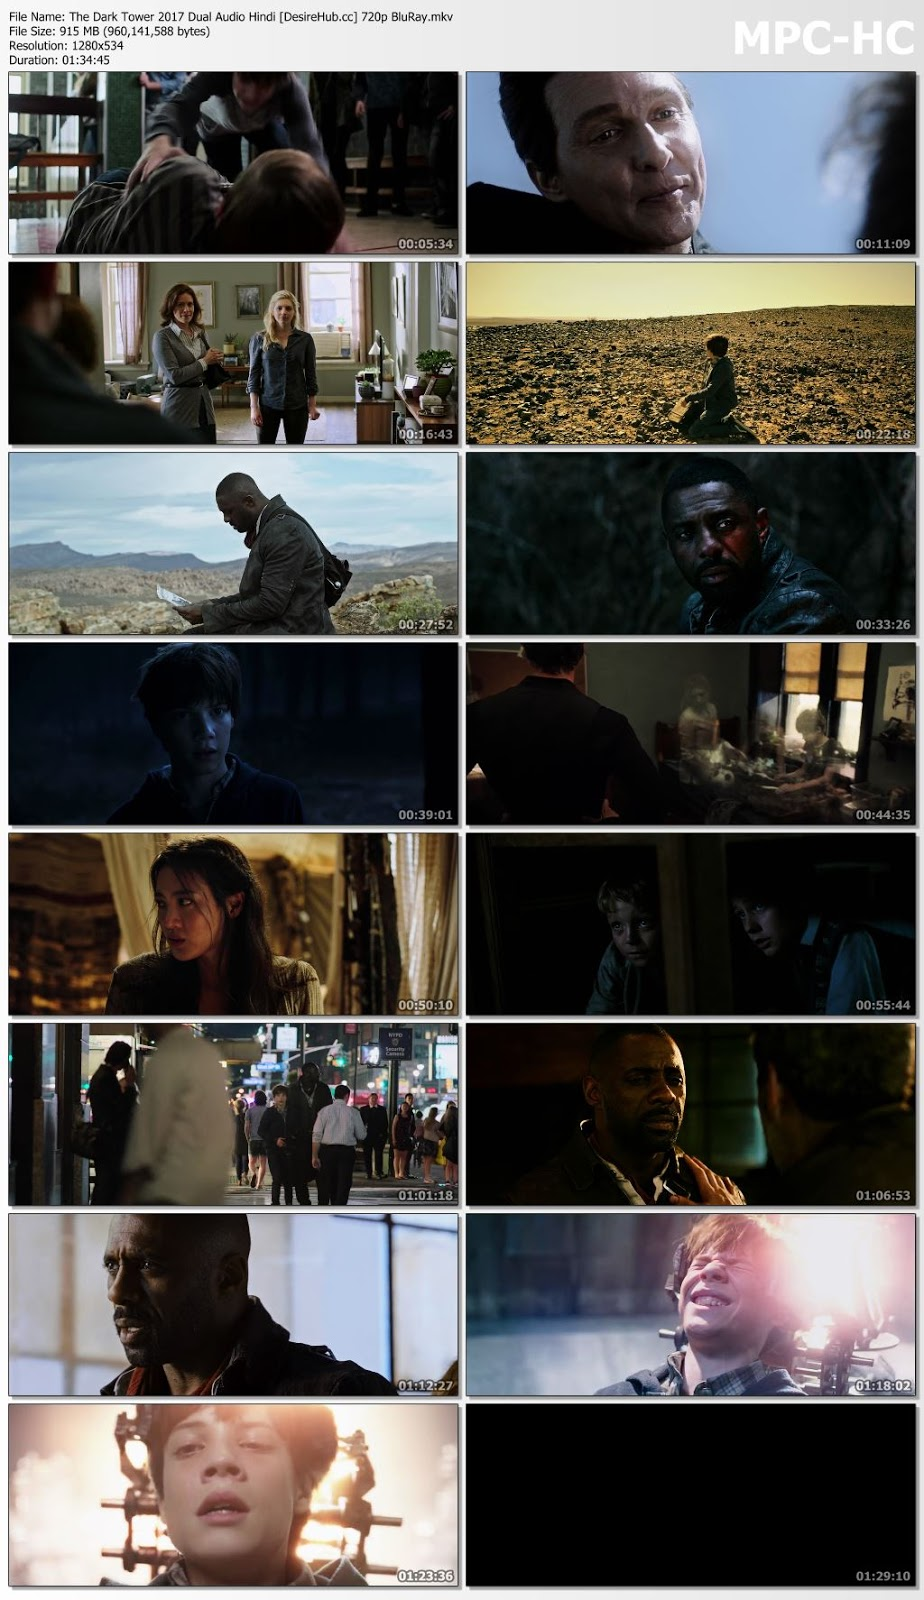 The Dark Tower 2017 Dual Audio Hindi 480p BluRay 300mb Desirehub